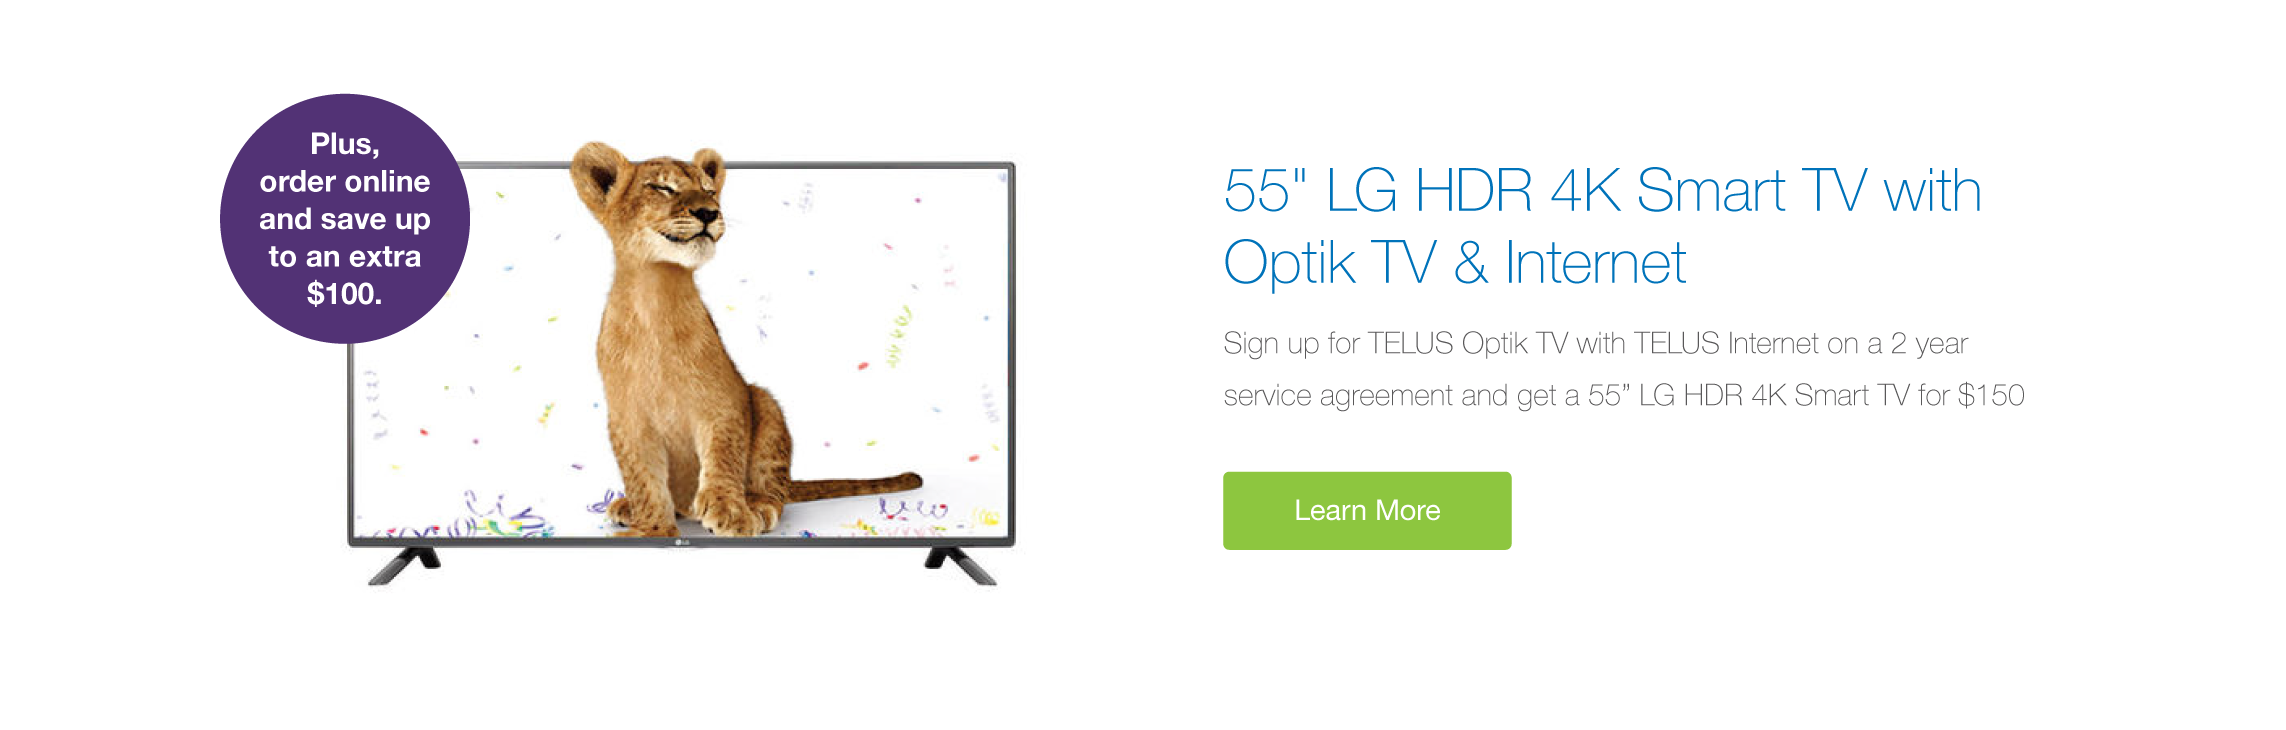 LG 4K TV with Optik TV and Internet